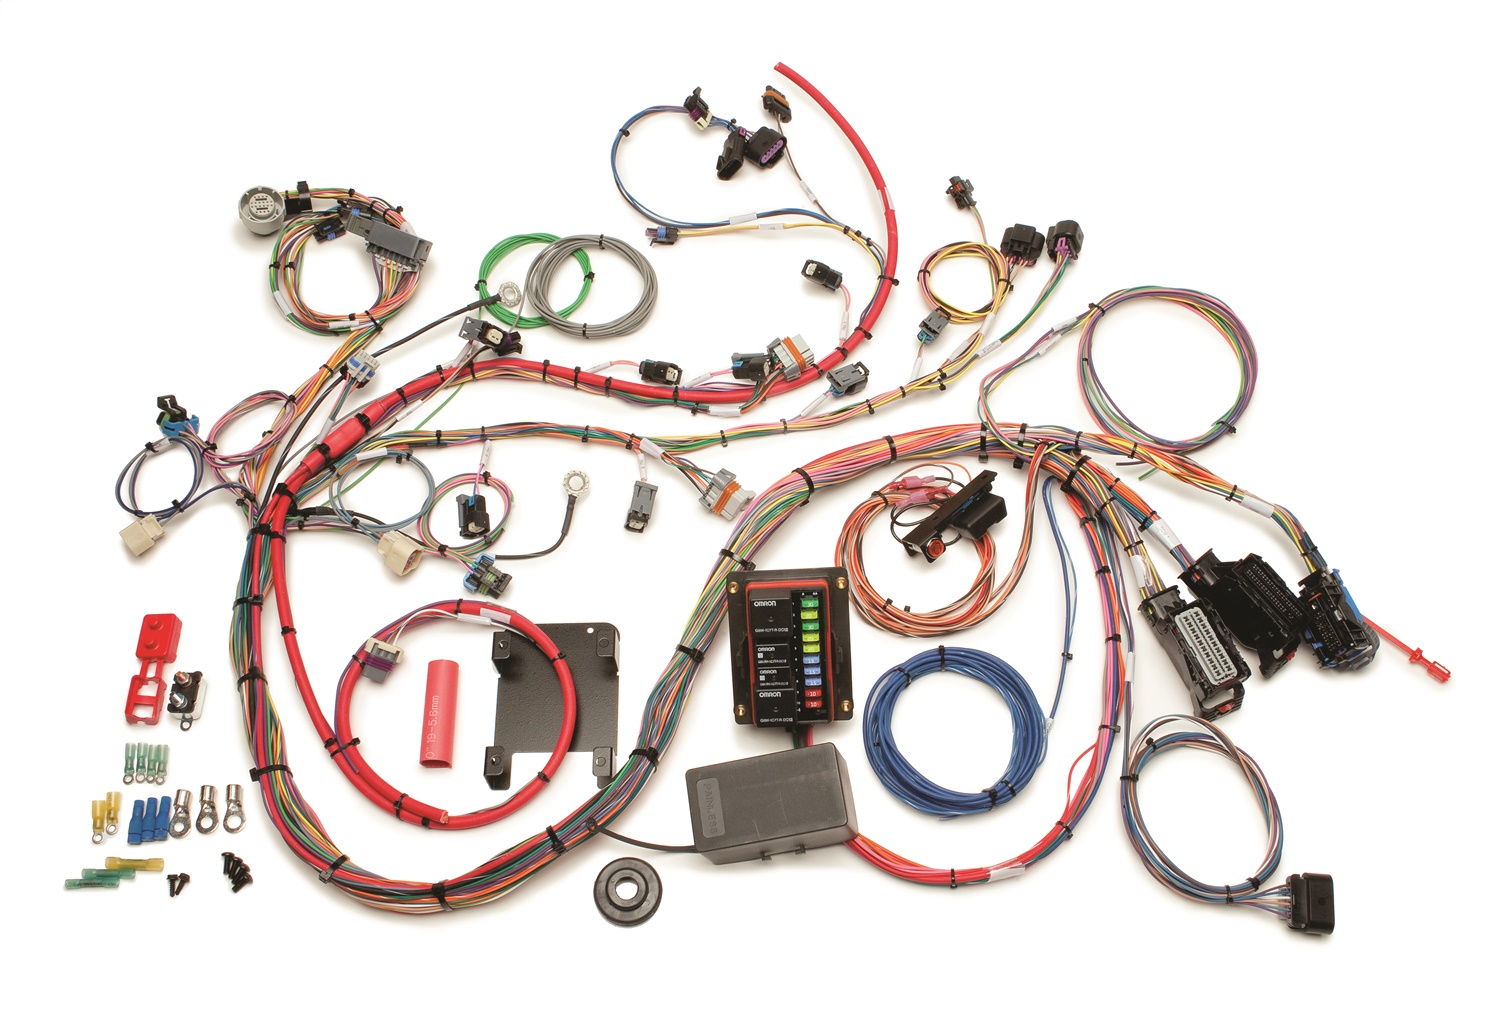 Painless Engine Wiring Harness Just Another Diagram Blog Universal 60526 Ebay Rh Com 1965 Chevelle